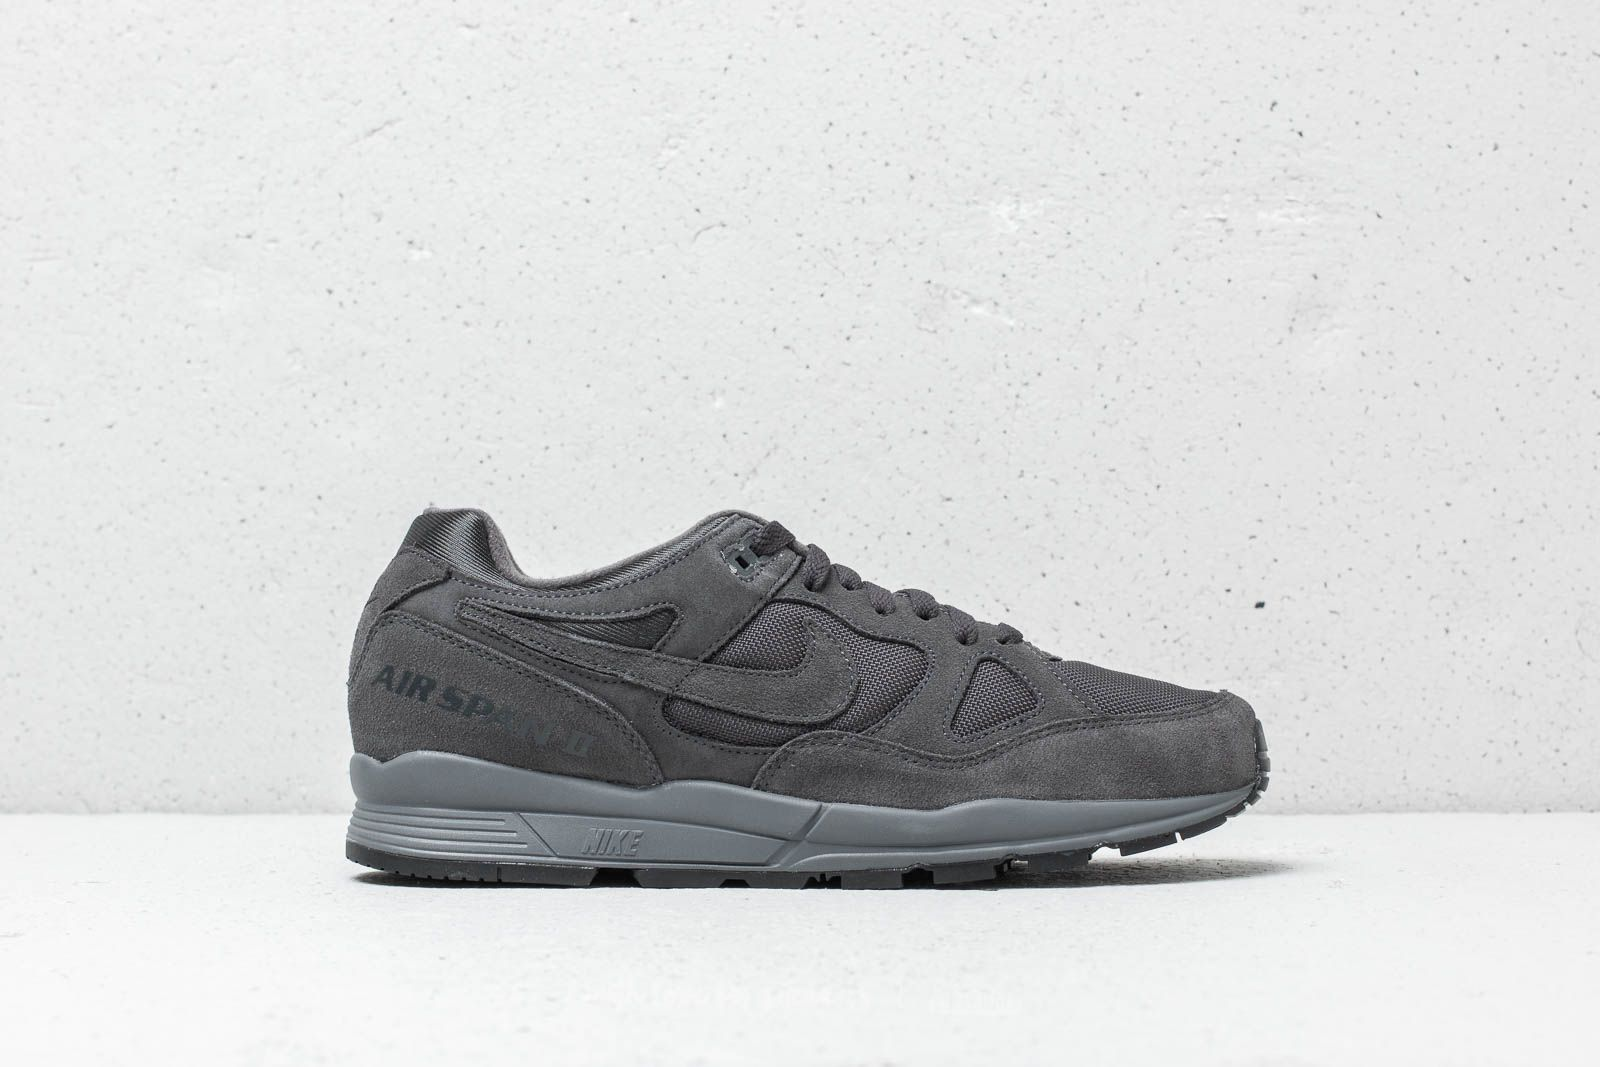 Nike Air Span II Premium Anthracite/ Anthracite | Footshop